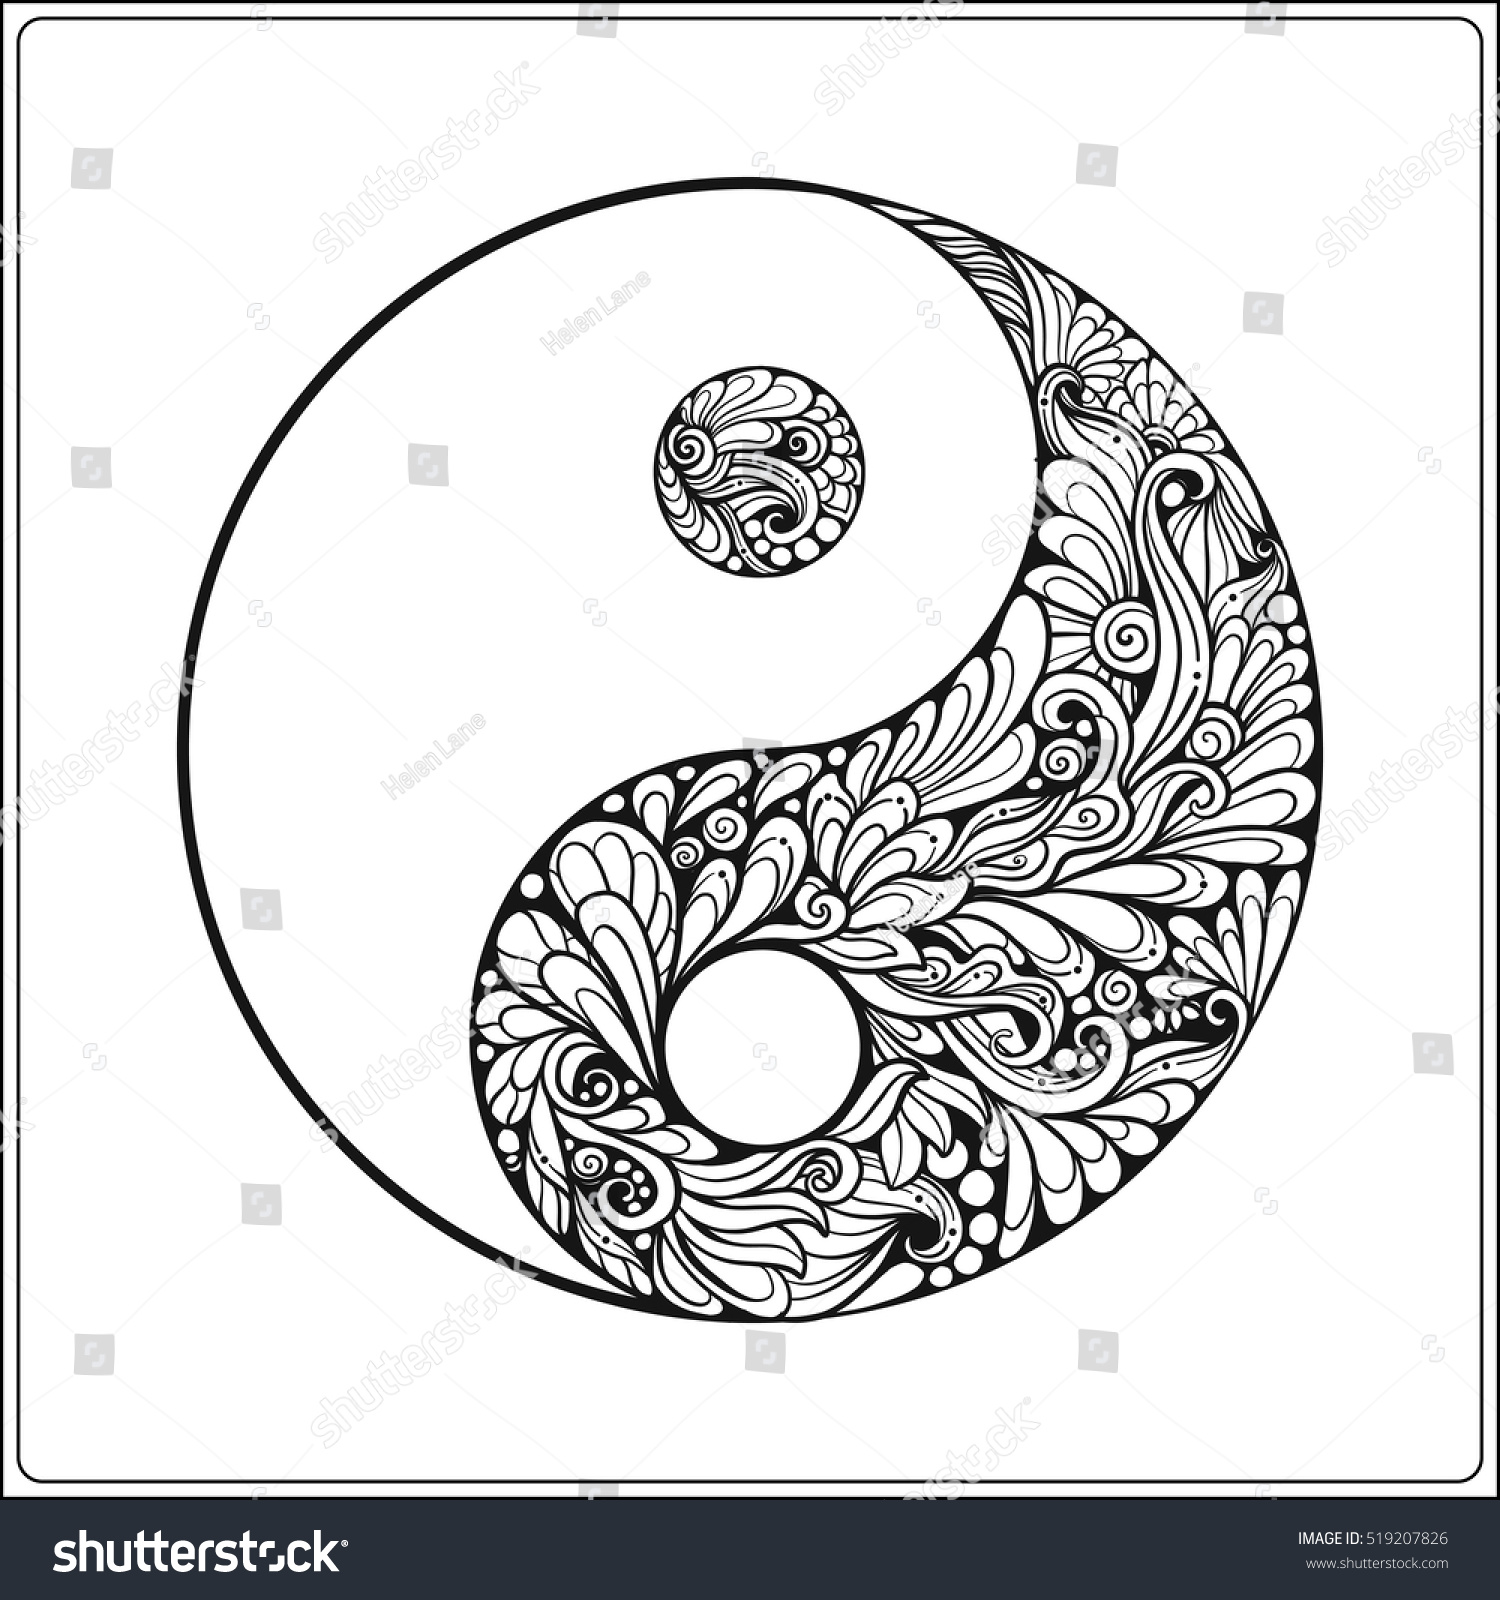 Yin yang coloring sheets - Symbol Of Yin And Yang In Gold On Black Background Coloring Book For Adult Outline Drawing Coloring Page Stock Vector